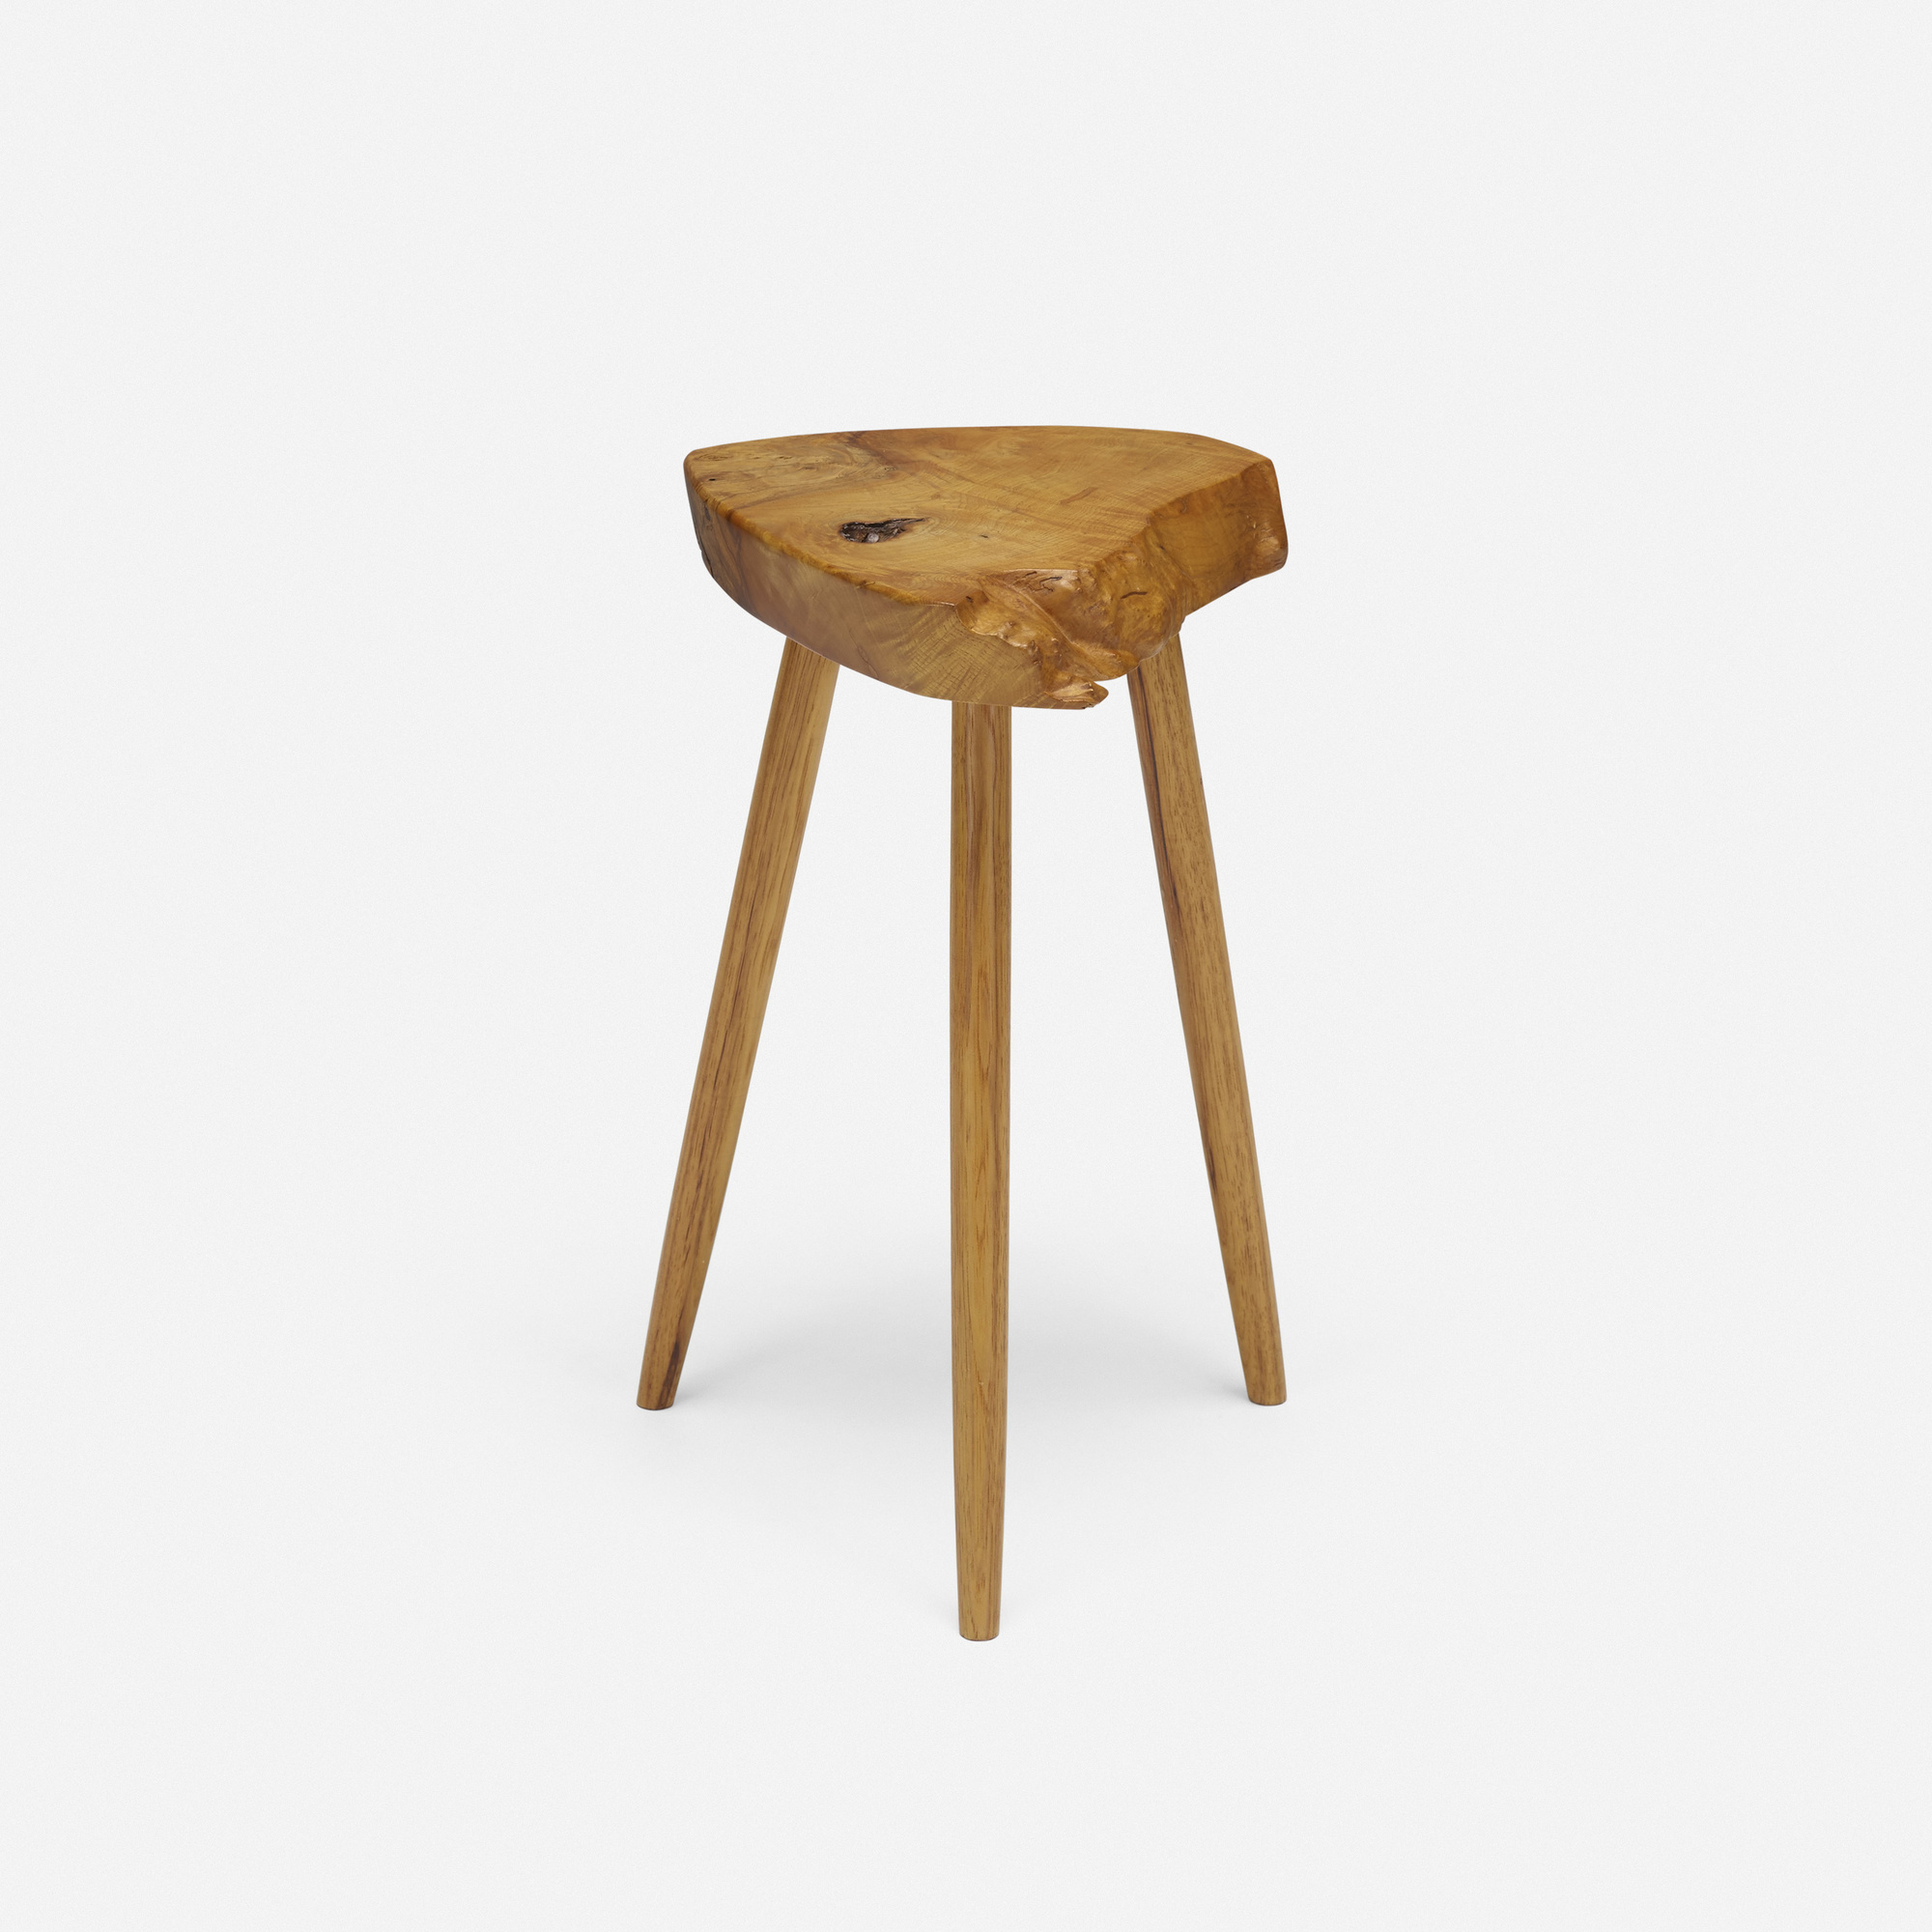 100: George Nakashima / Wepman occasional table (2 of 3)